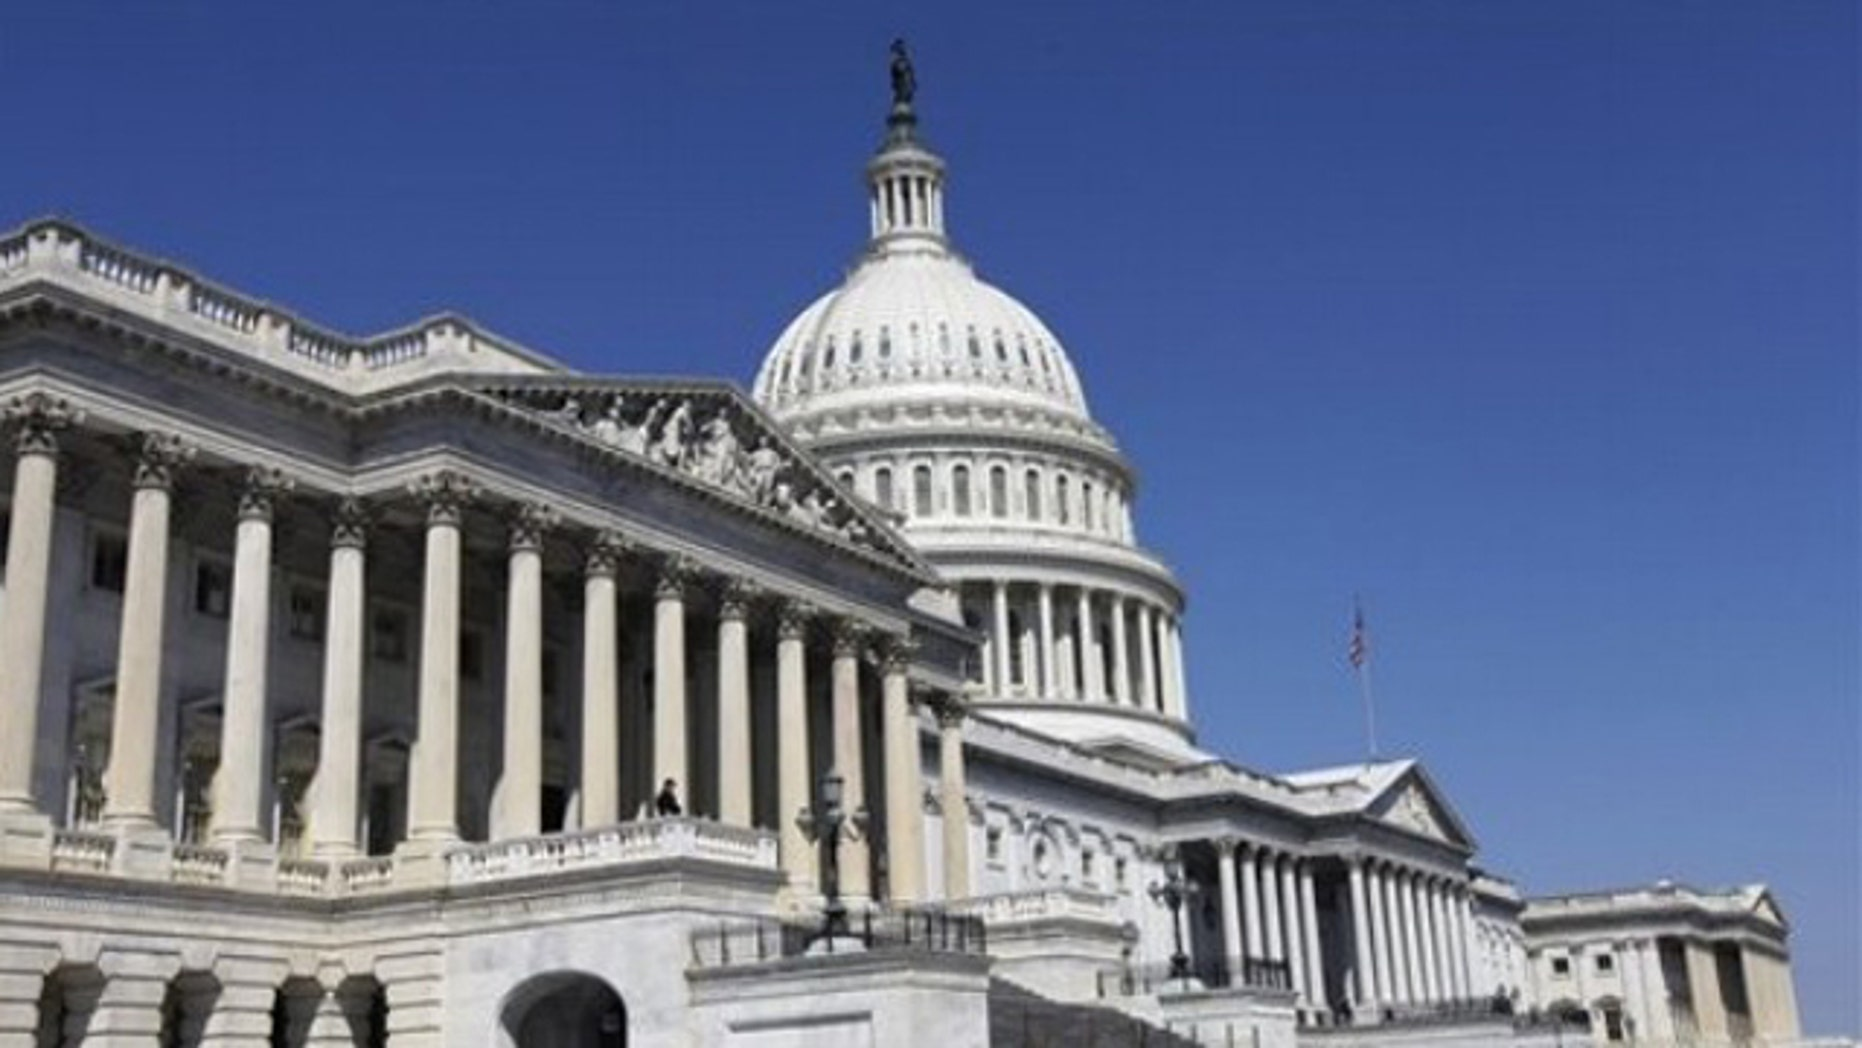 The US Capitol is seen in Washington, Wednesday, April 6, 2011, with the House of Representatives in the foreground, as Congress debates the budget. (AP Photo/Alex Brandon)